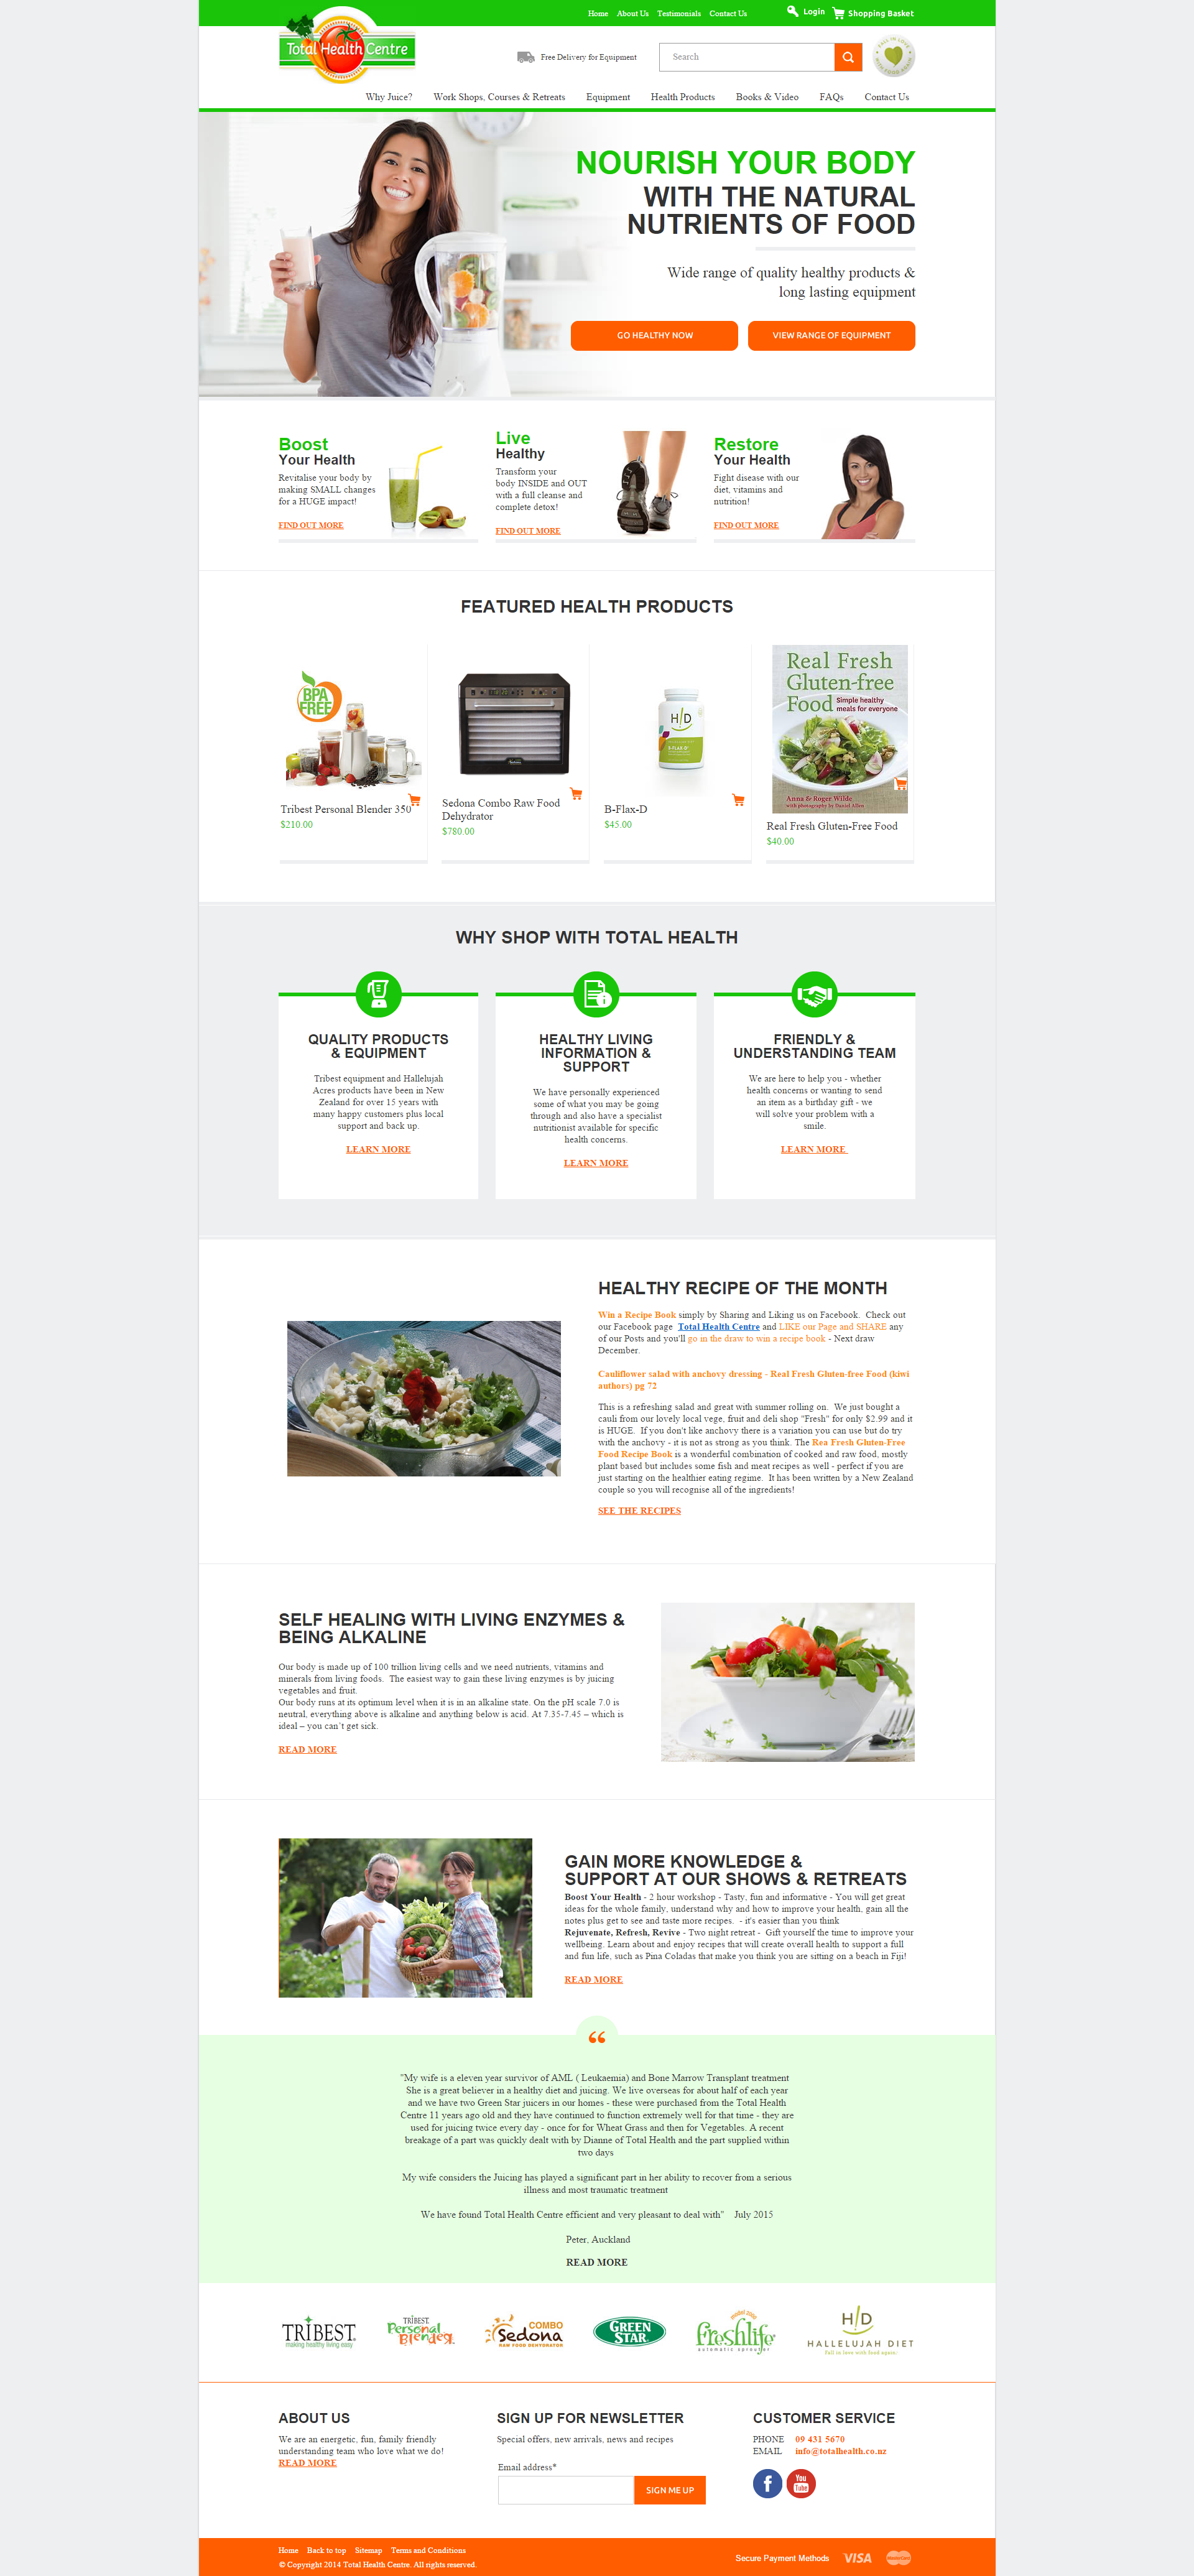 A Zeald Website has helped Total Health Center (http://www.totalhealth.co.nz/) to achieve their business dream, visit www.zeald.com/Our+Work for more. The art and science of good #websitedesign #website #websiteredesign #webdesign #designinsperation #rethinkyourwebsite #layout #redesign #redesignideas #redesigninspiration #creative #landingpages #beforeafter #responsive #leadgeneration #travel #wordpress #leadgen #accomodation #technology